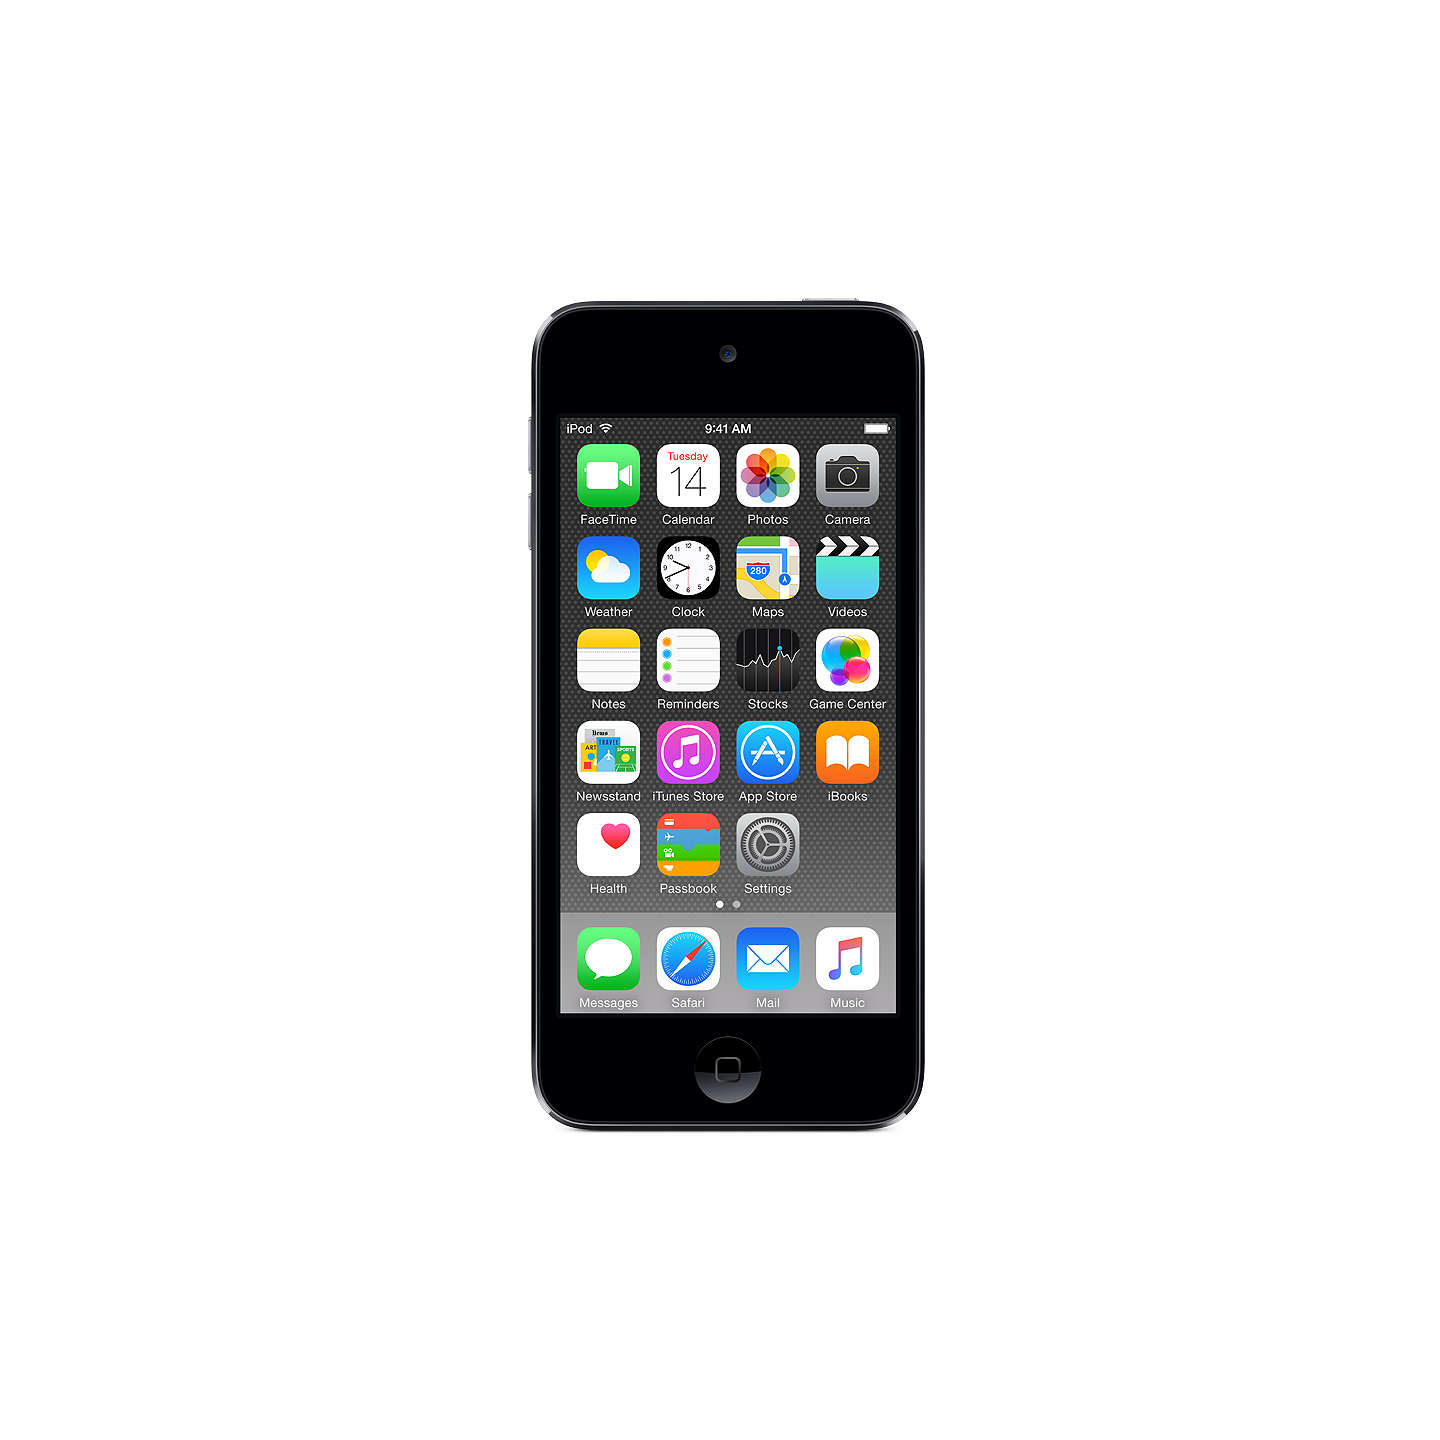 apple ipod touch 32gb space grey at john lewis. Black Bedroom Furniture Sets. Home Design Ideas